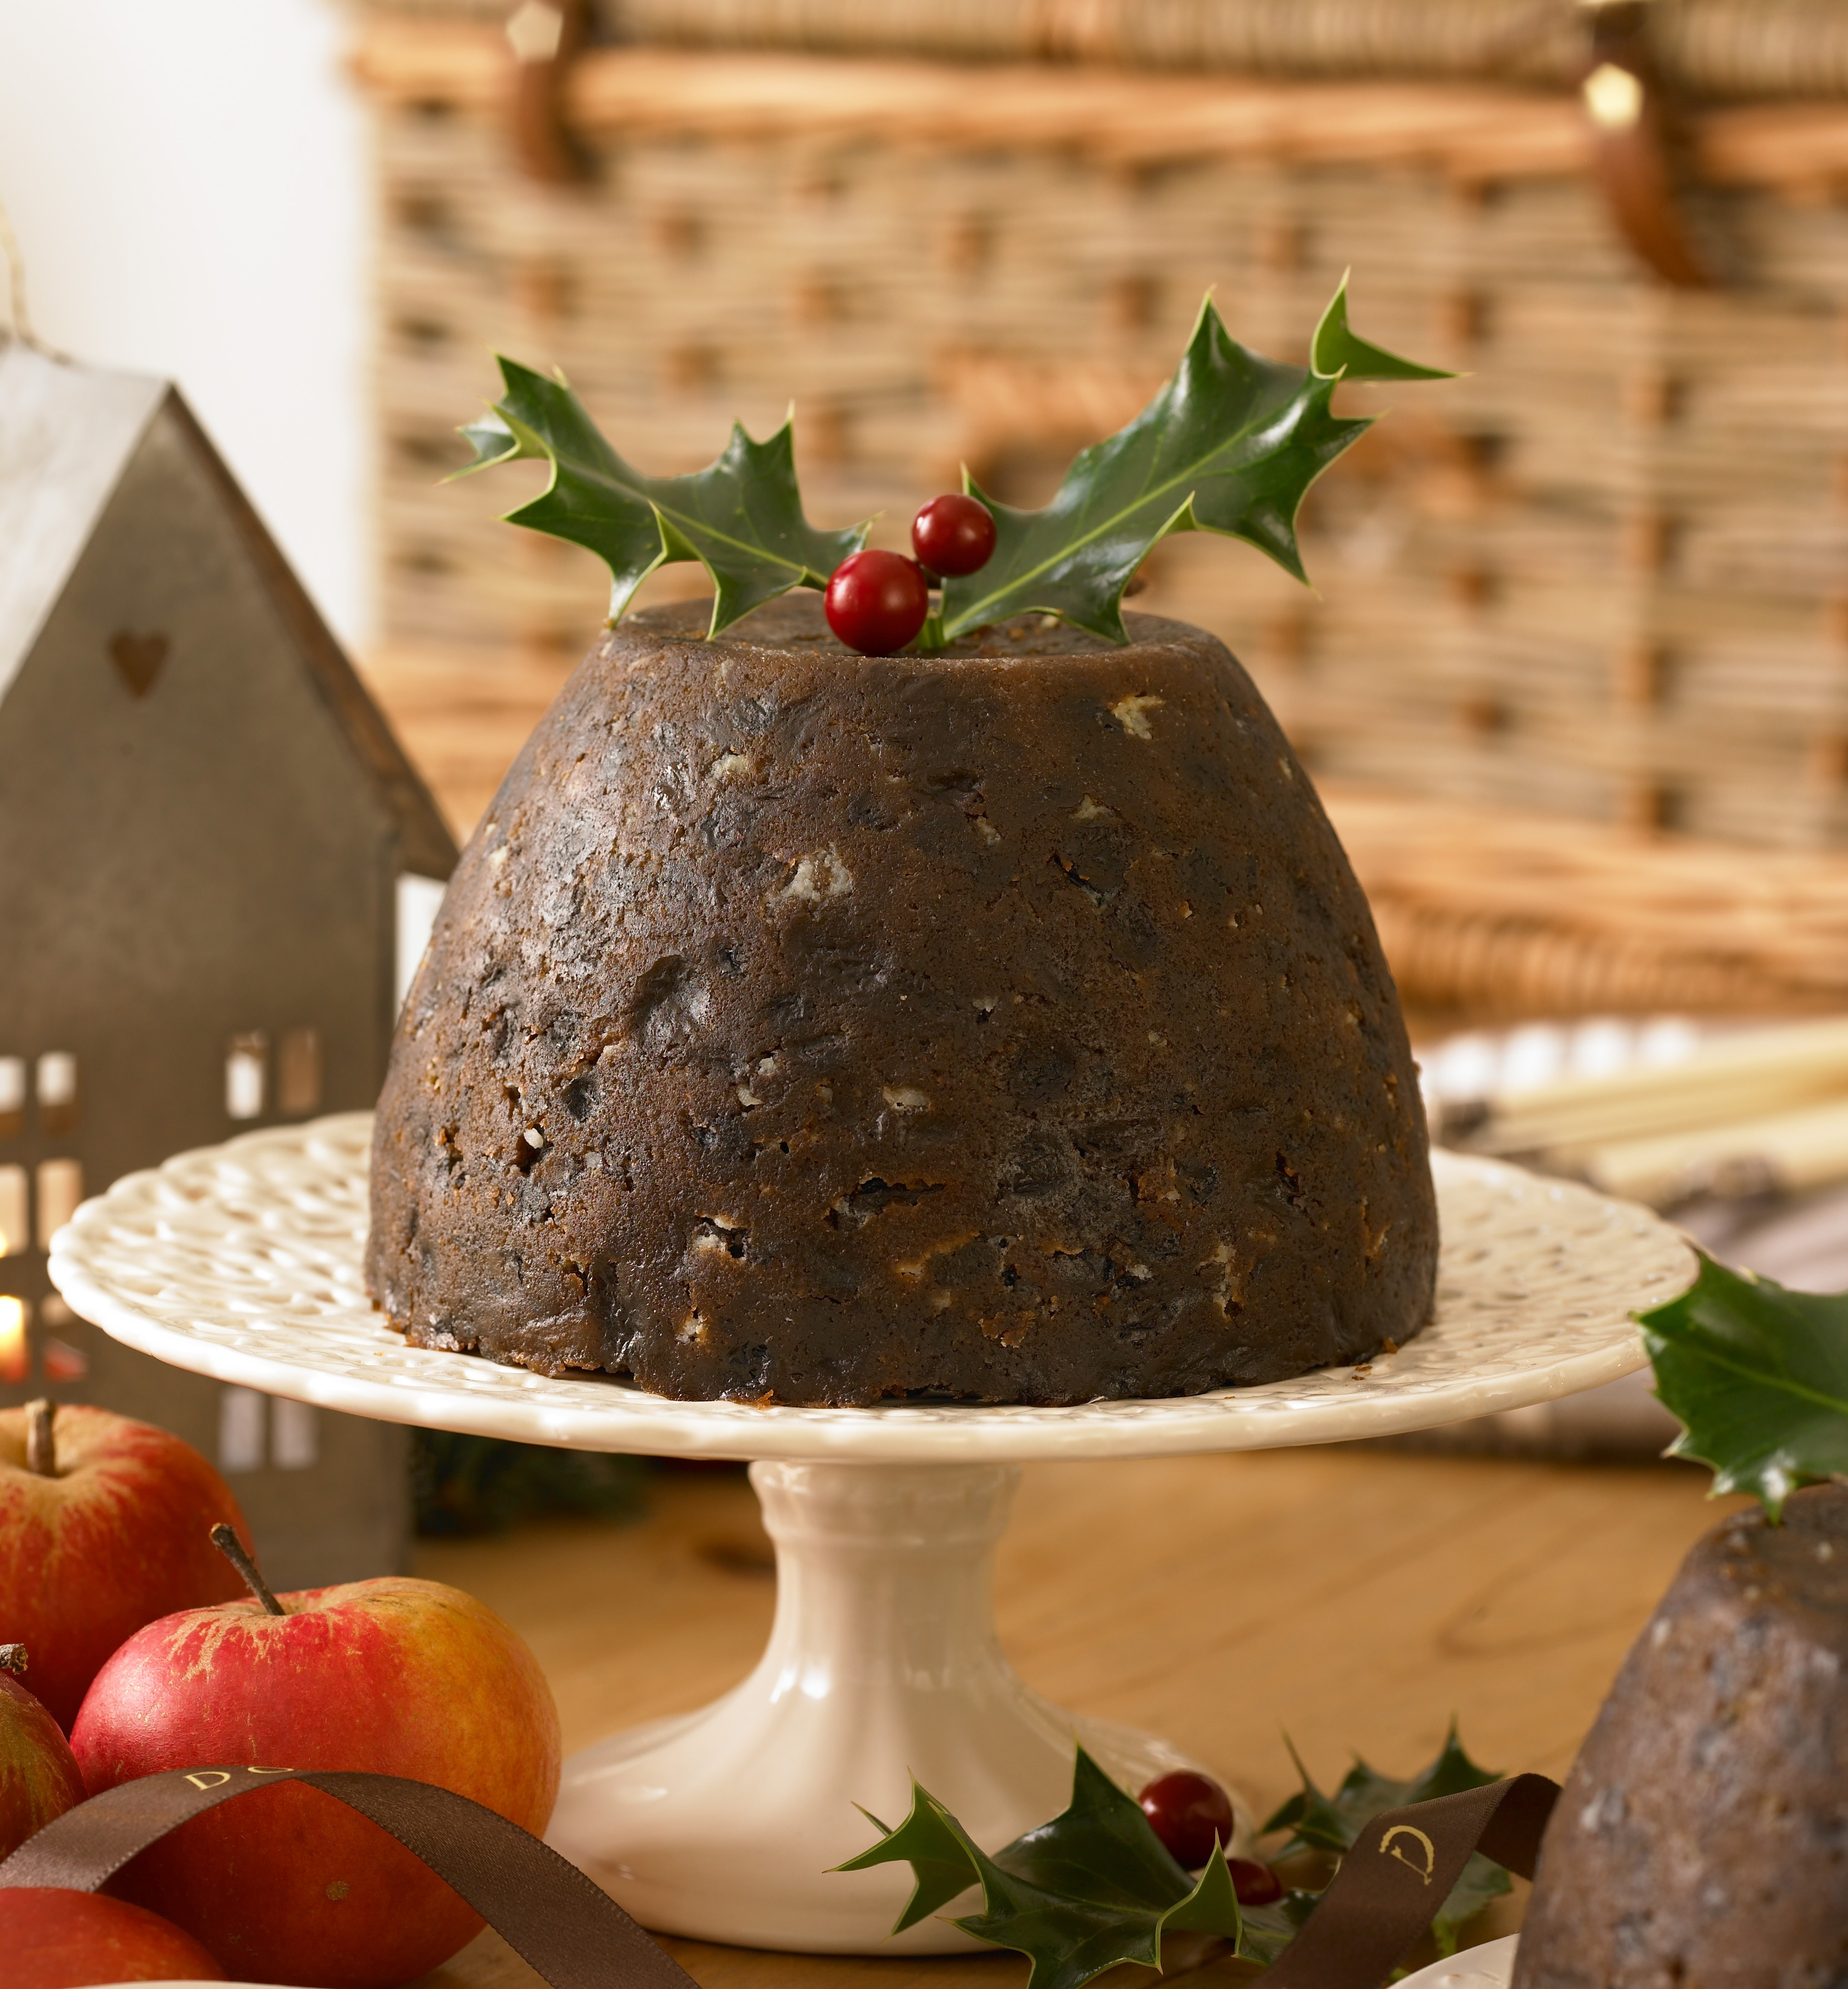 Traditional christmas pudding recipe thetaste product of the lodge kitchen at doonbeg forumfinder Choice Image